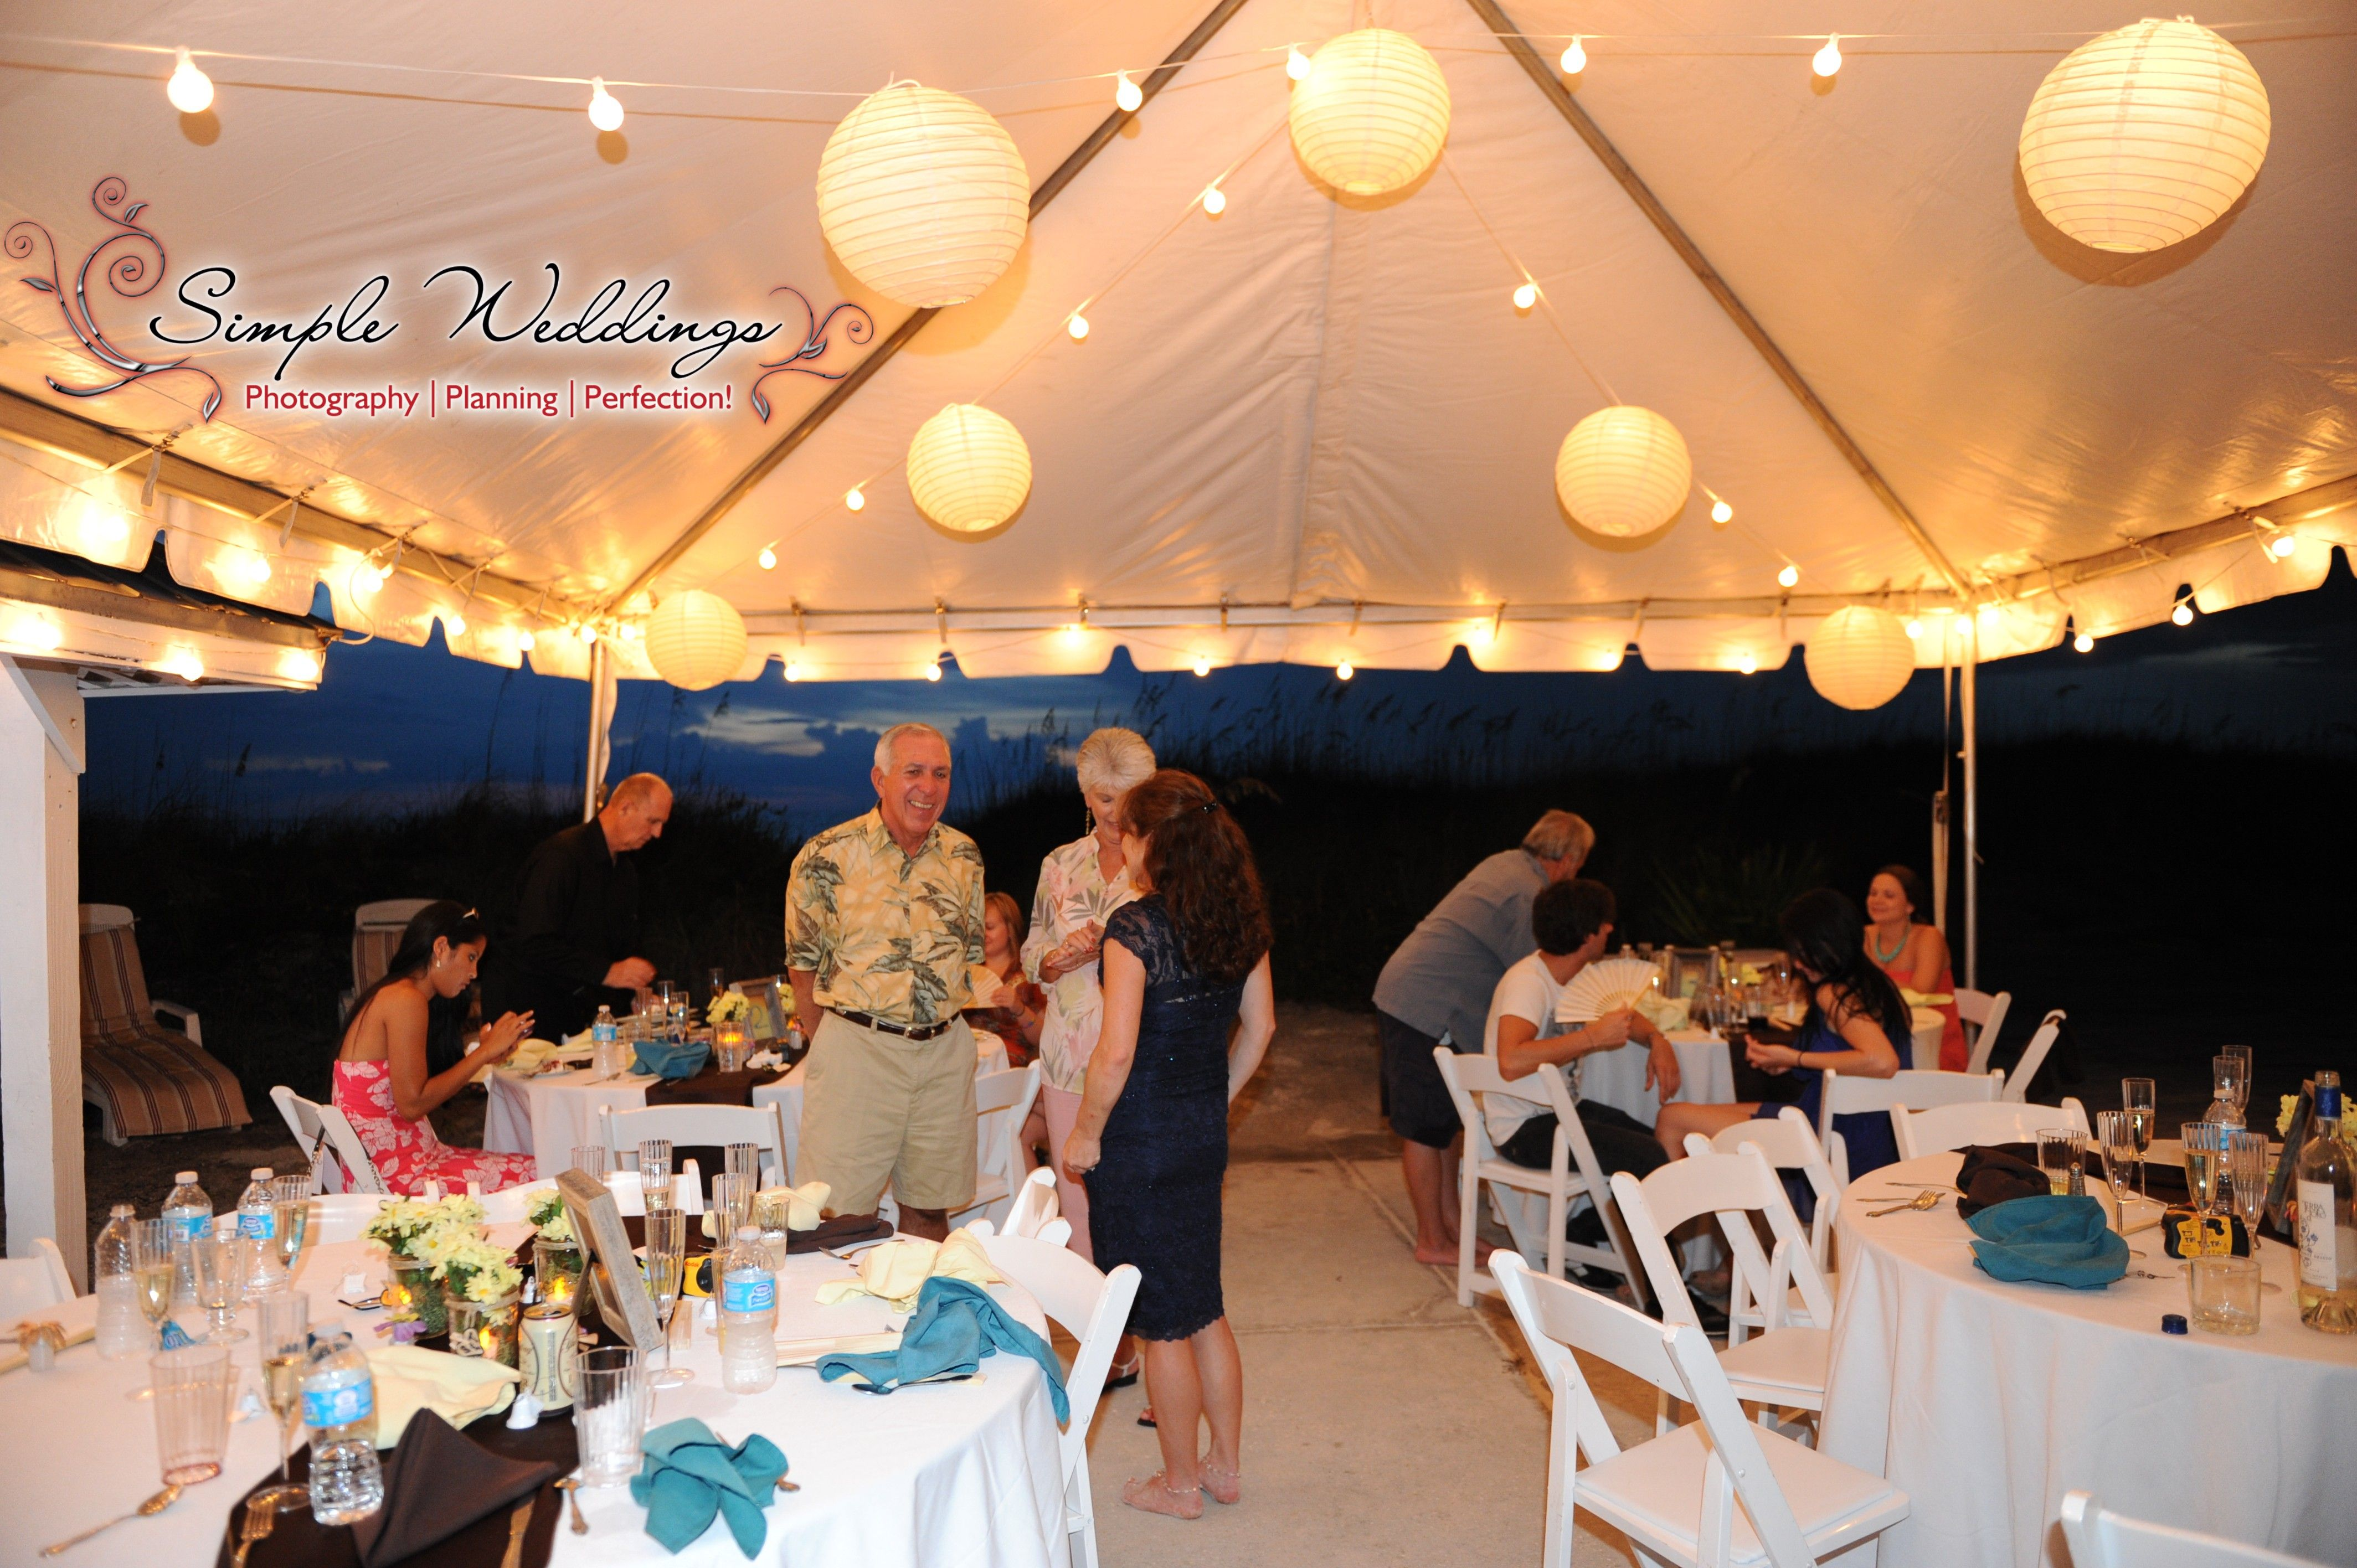 Tented Evening Beach Wedding Reception At The Serendipity House Near Tampa Clearwater And